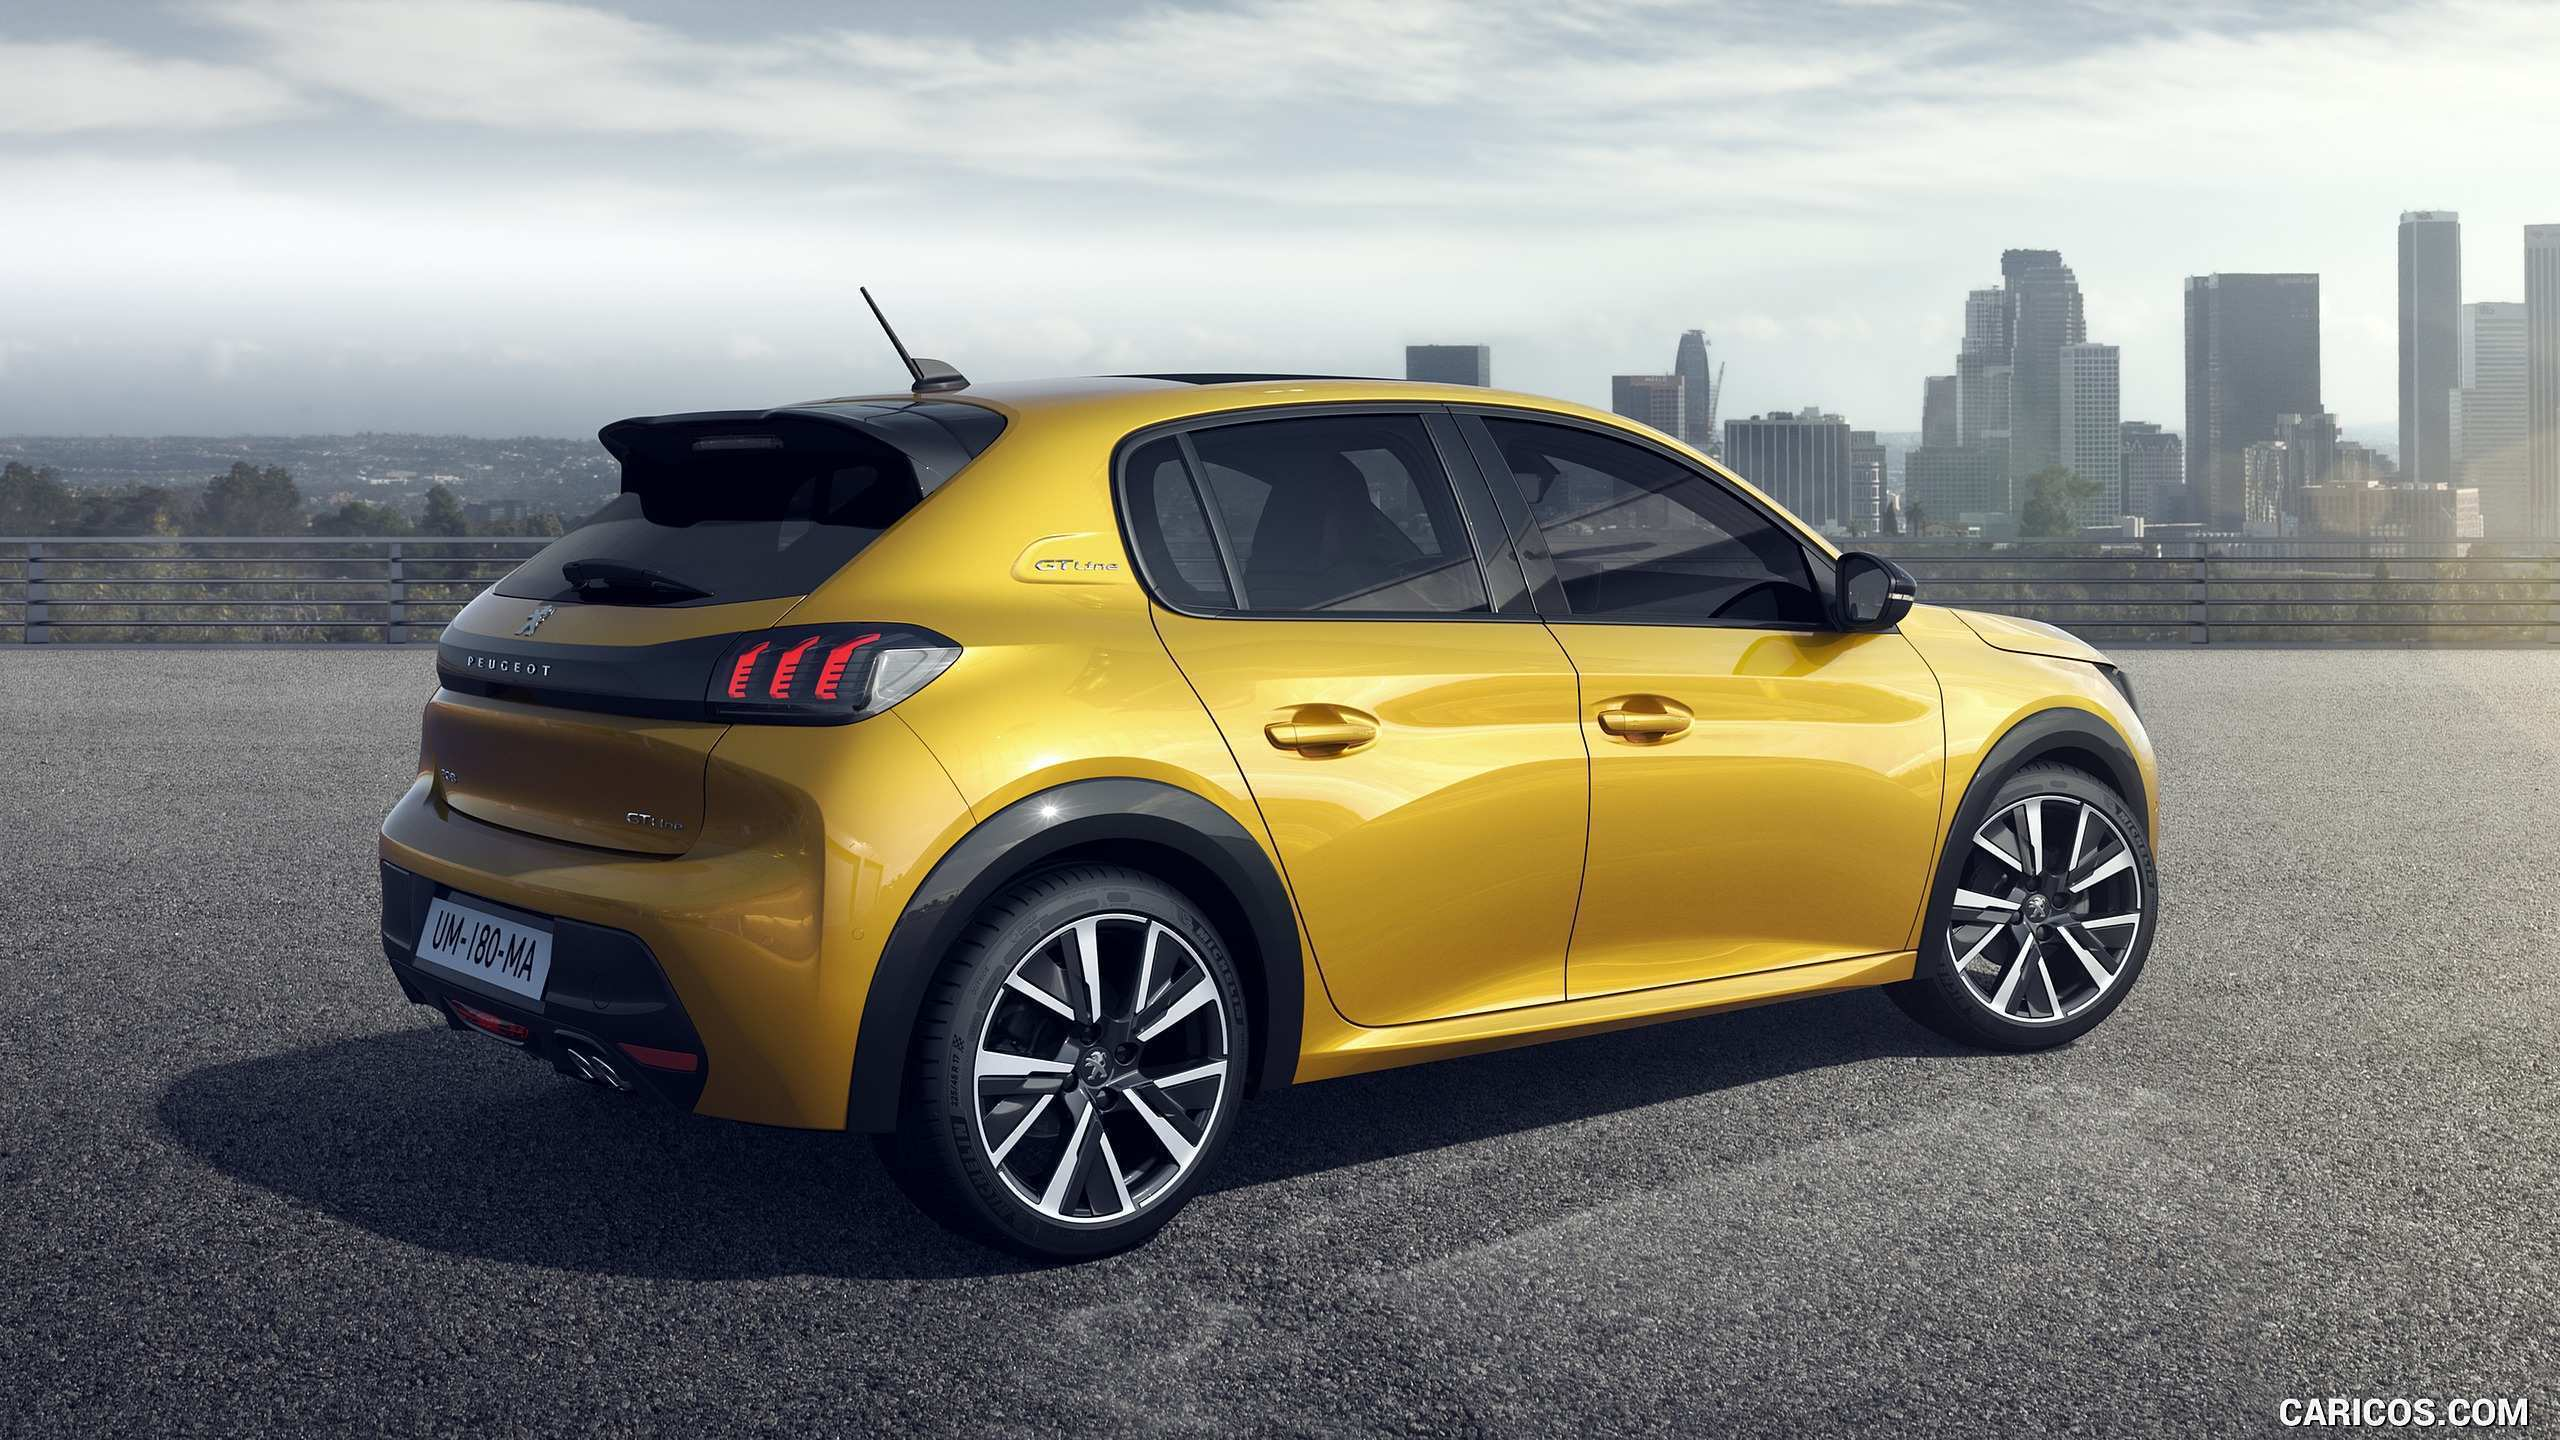 32 New 2020 Peugeot 208 Exterior and Interior by 2020 Peugeot 208